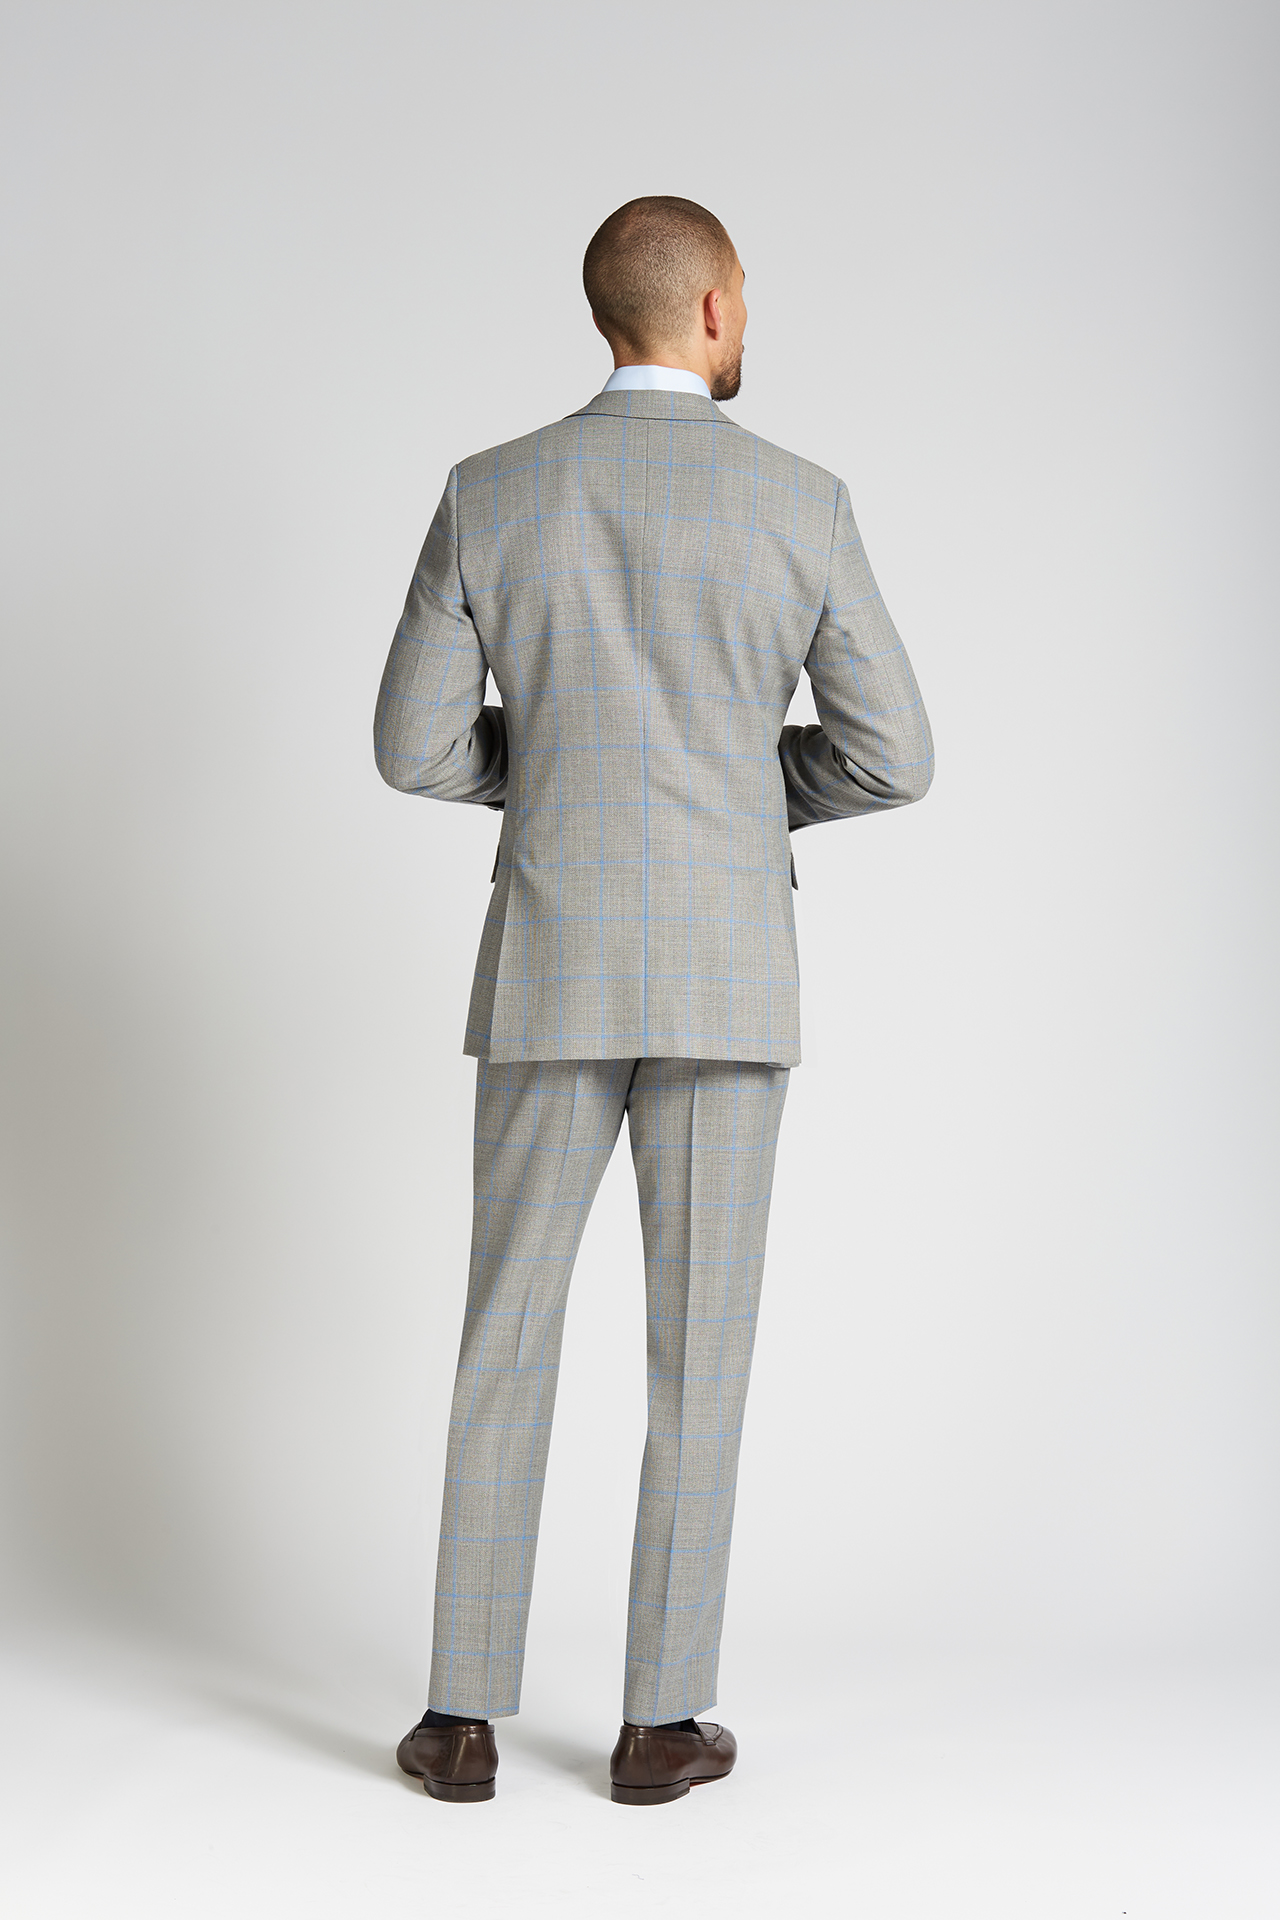 97605e85f5a31b ... August McGregor Slim-fit 4-Season Wool 2-piece Suit in Grey with ...